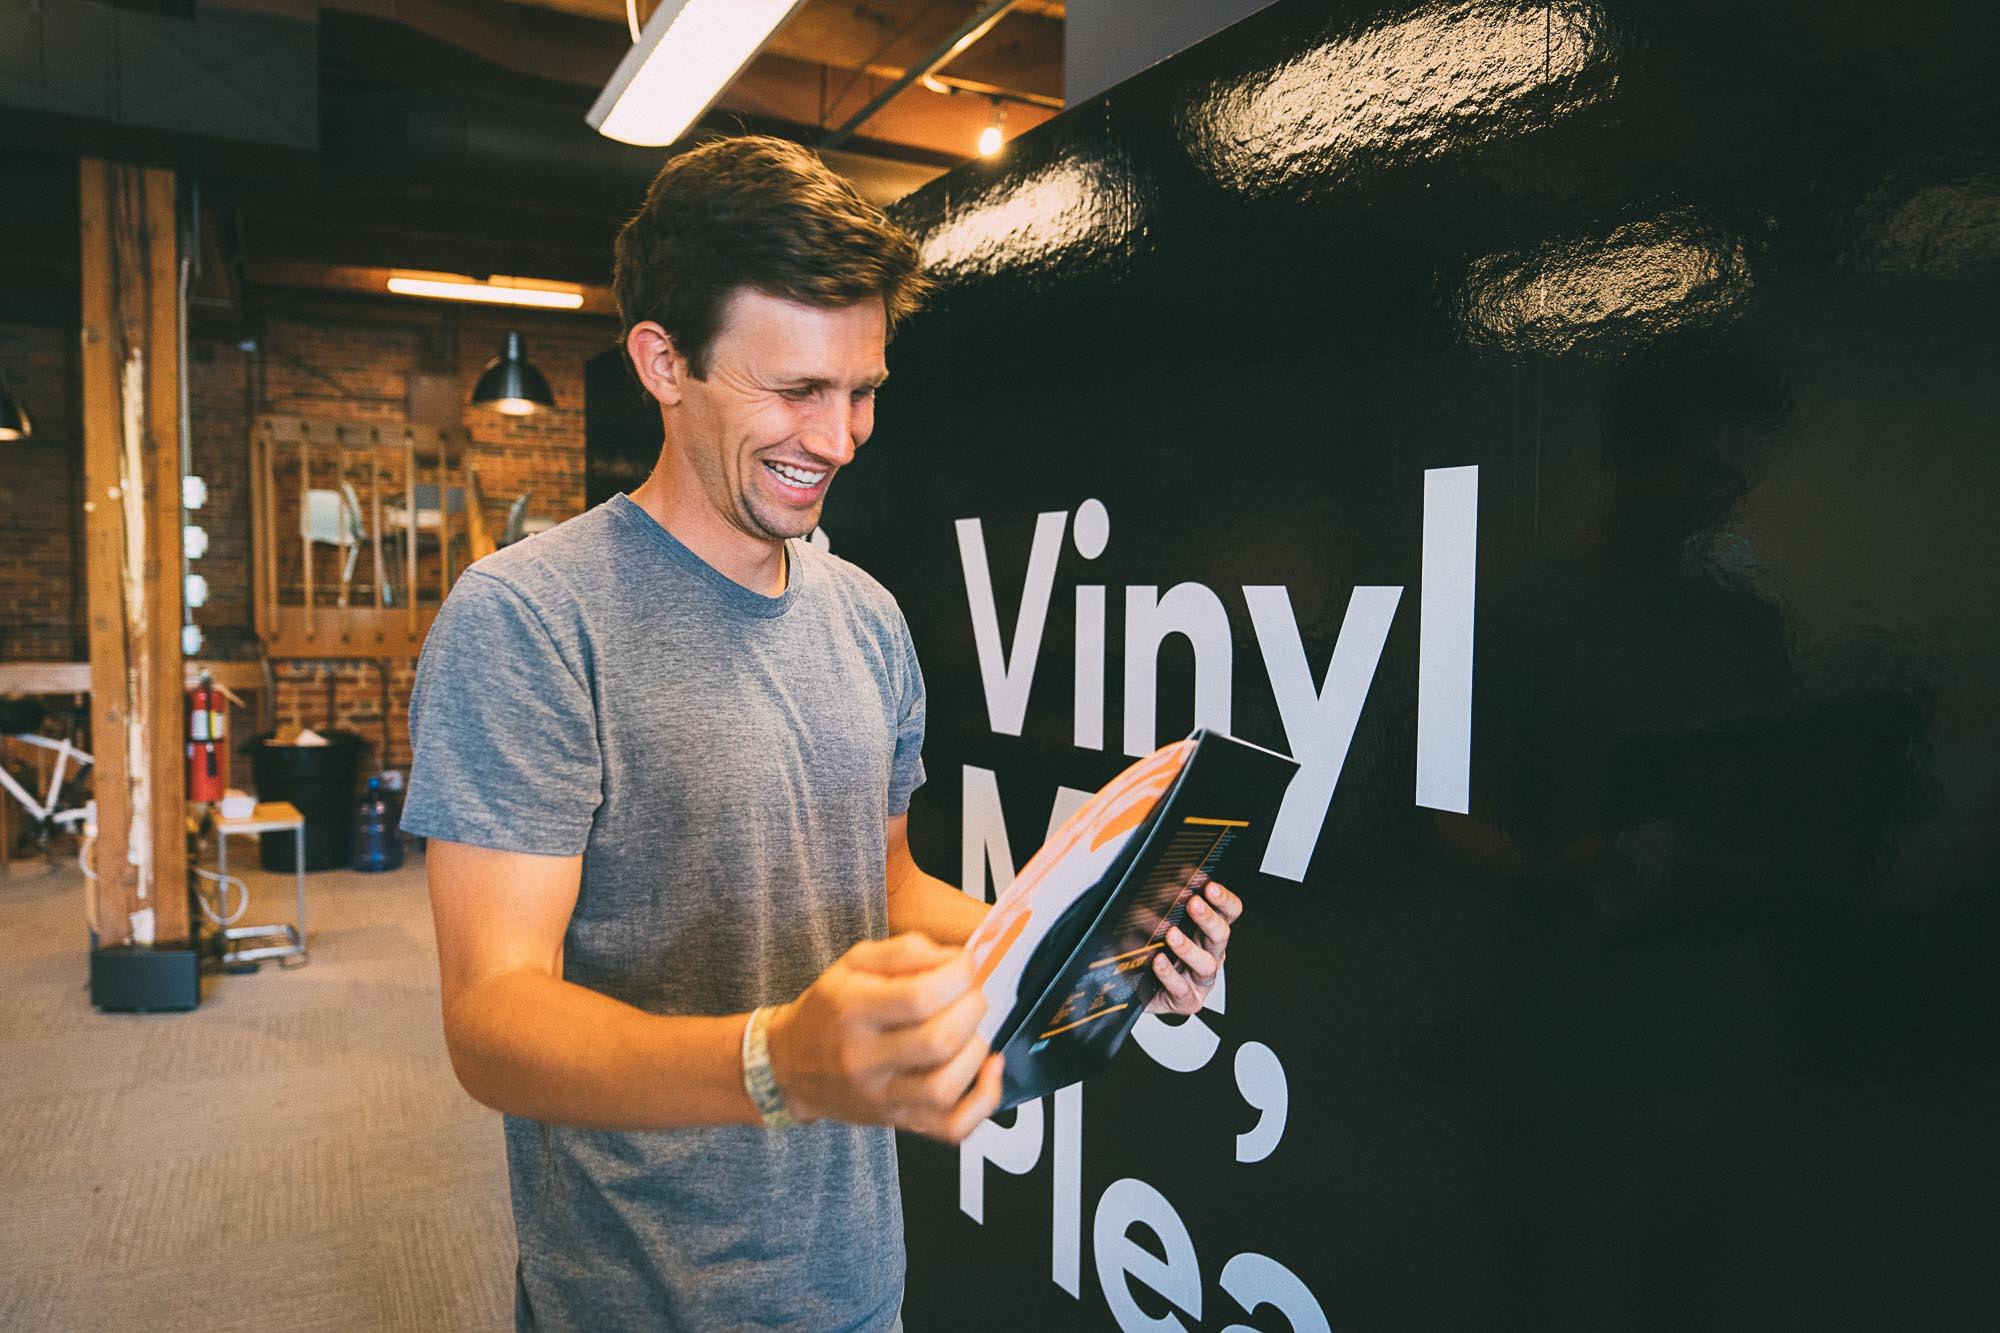 A man smiles while holding a vinyl record in Denver.